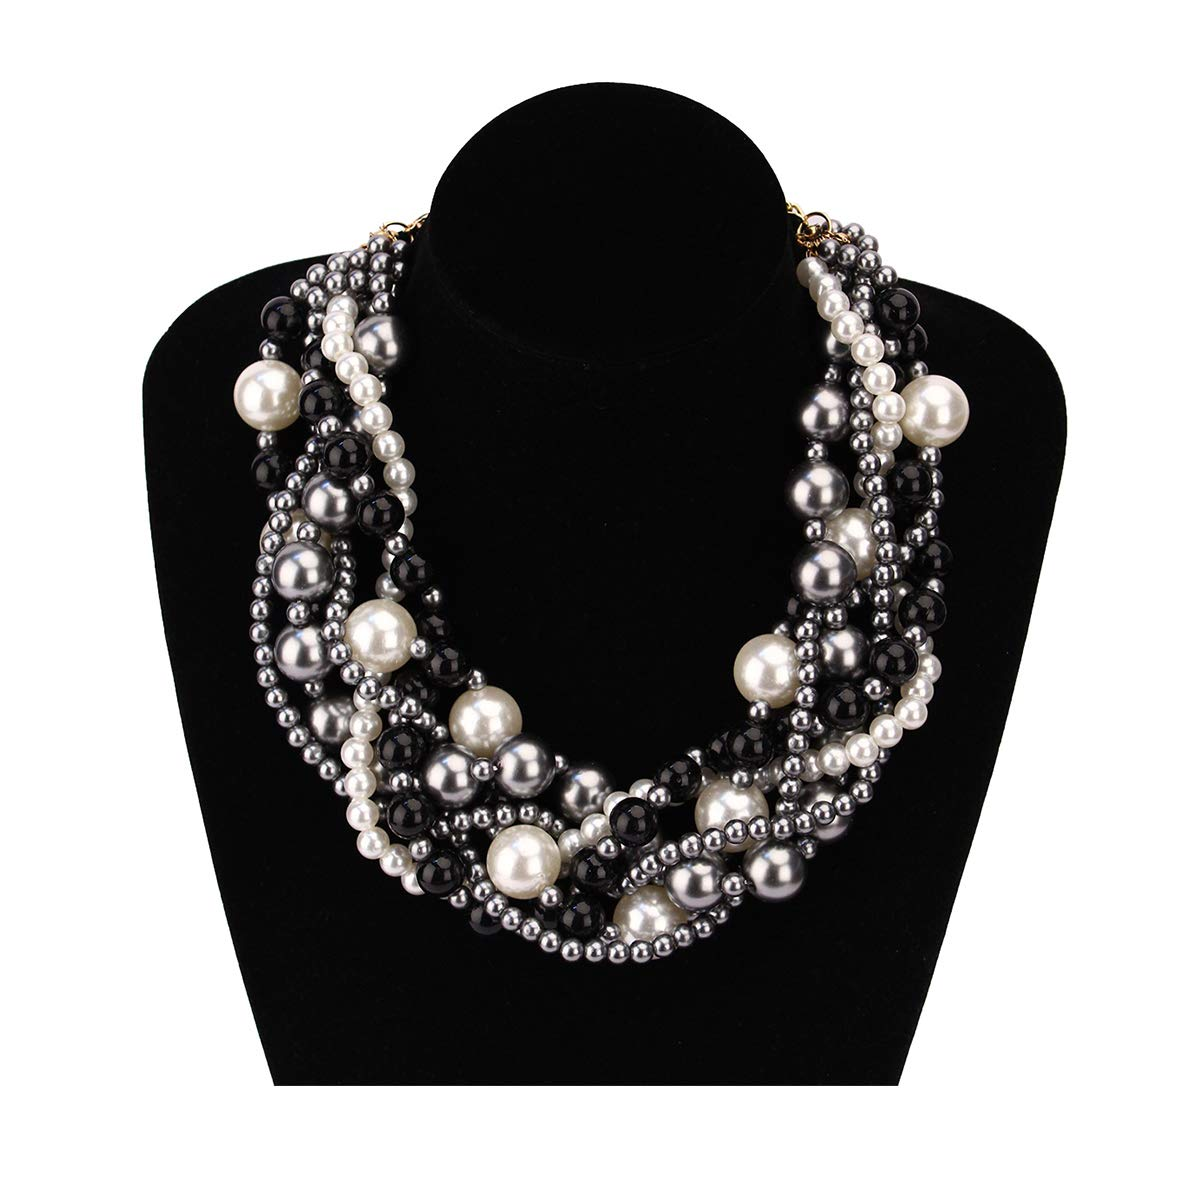 MeliMe Women's Imitation Pearl Twisty Chunky Bib Necklace Pearl Chokers for Wedding Party